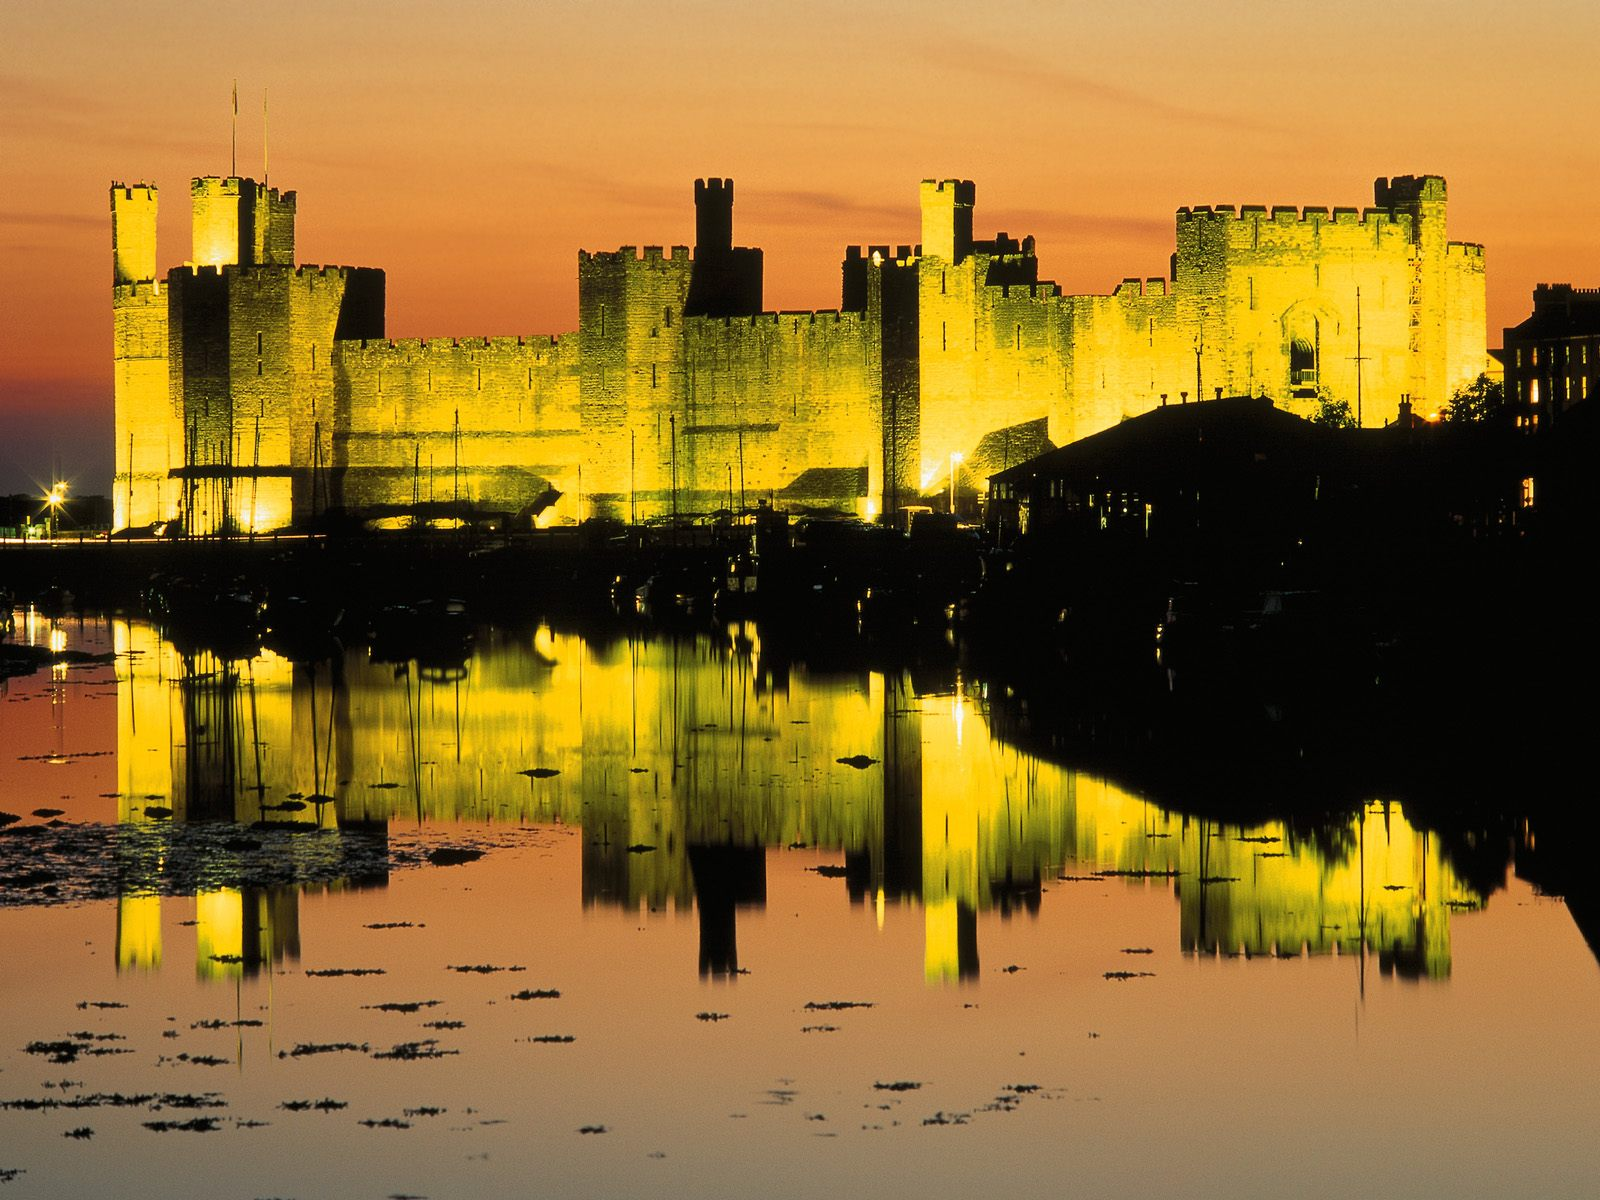 Caernarfon United Kingdom  City pictures : Wales United Kingdom postcard, Caernarfon Castle Wales United Kingdom ...